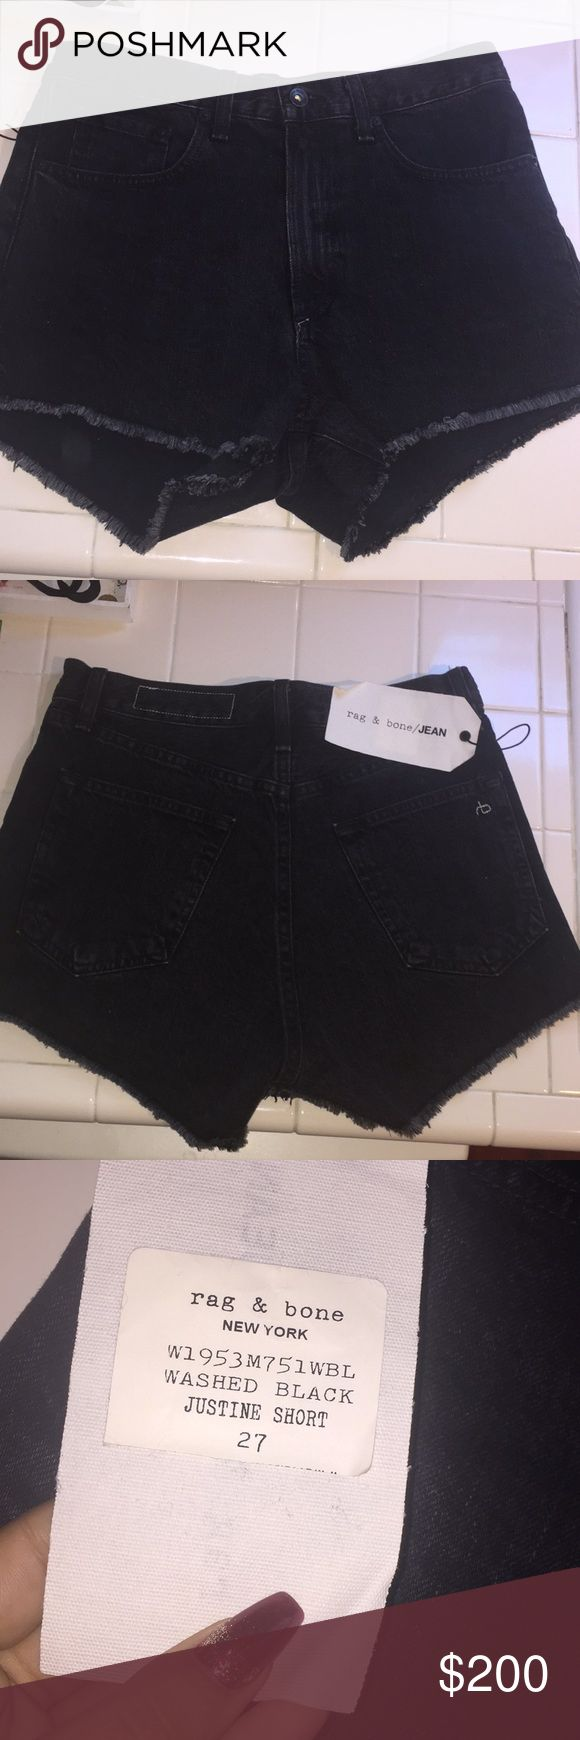 Rag & Bone New York Denim Shorts High-waisted, beautiful, soft denim. Brand new and never worn out. Tried on and just not the right fit. Id recommend a small waisted person with curves and booty. My figure is skinny and straight so just looks baggy on me. Received as a Christmas gift but just dont want them to go to waste! rag & bone Shorts Jean Shorts